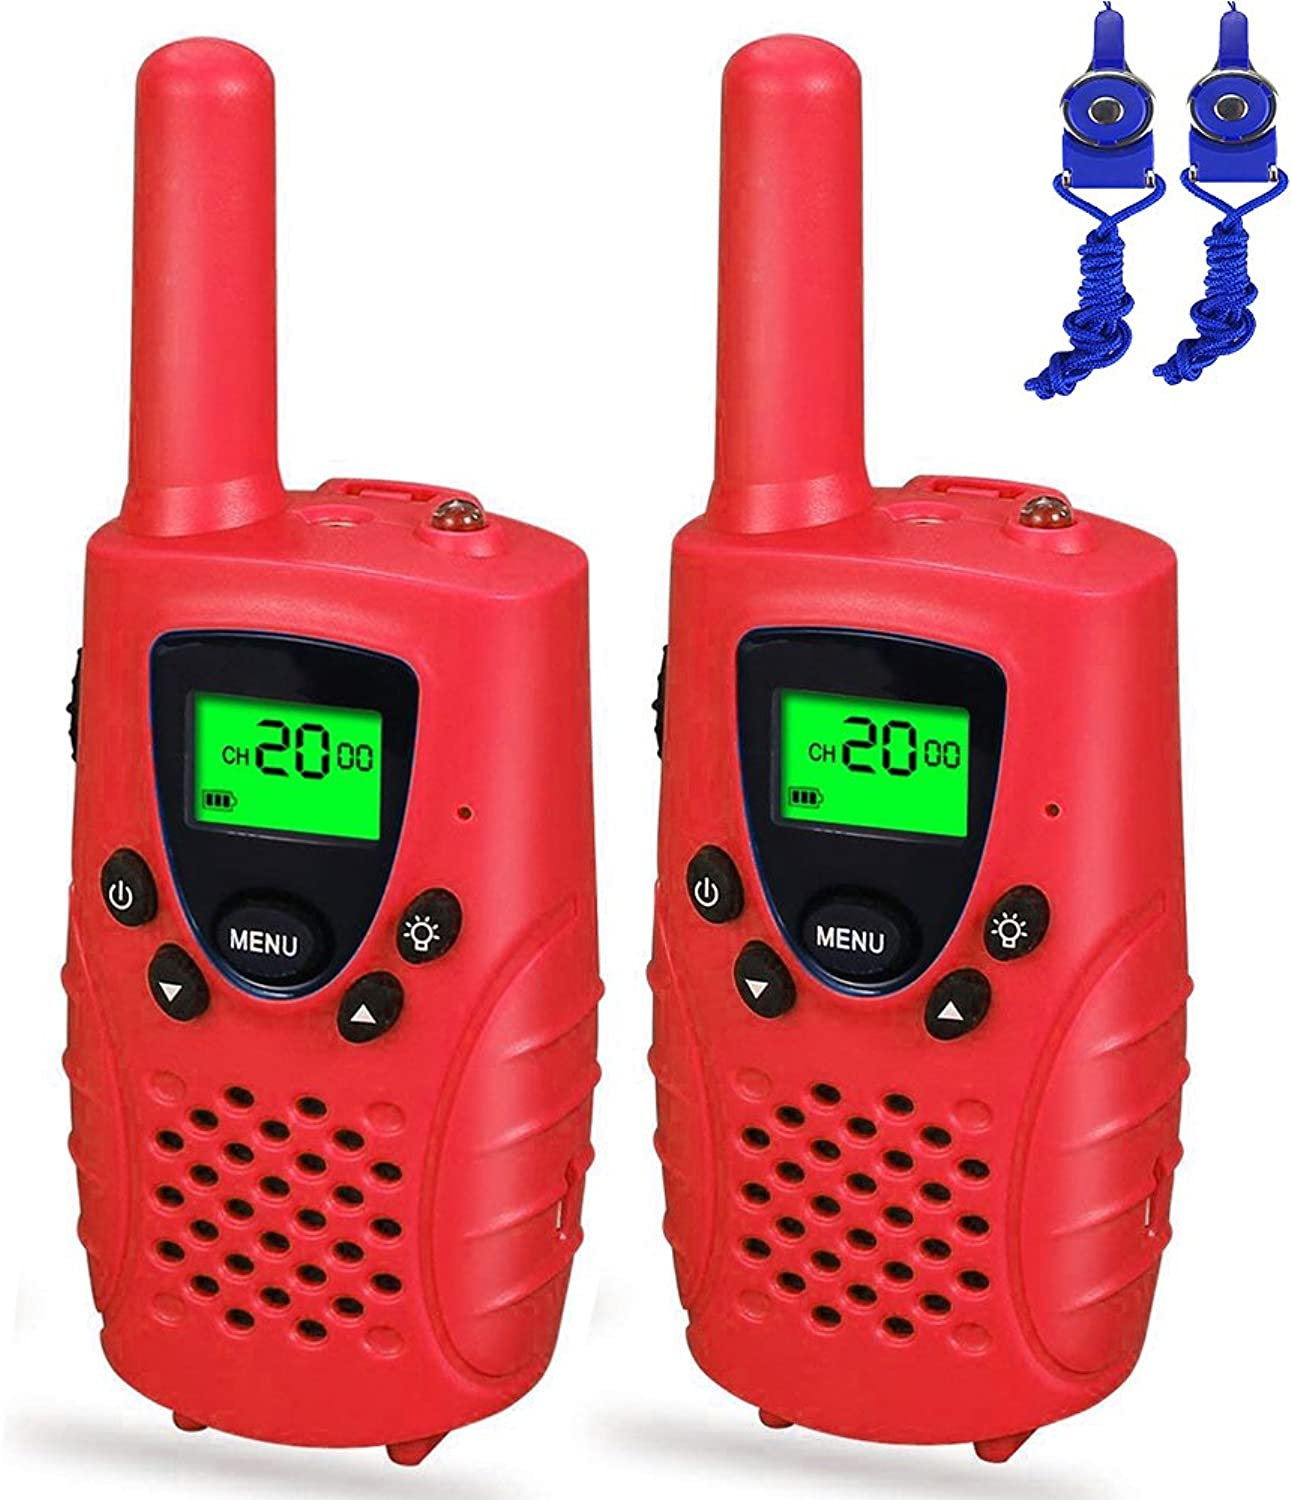 Cooco Long Range Two-Way Radios T38 - Best Gifts for Boys Girls